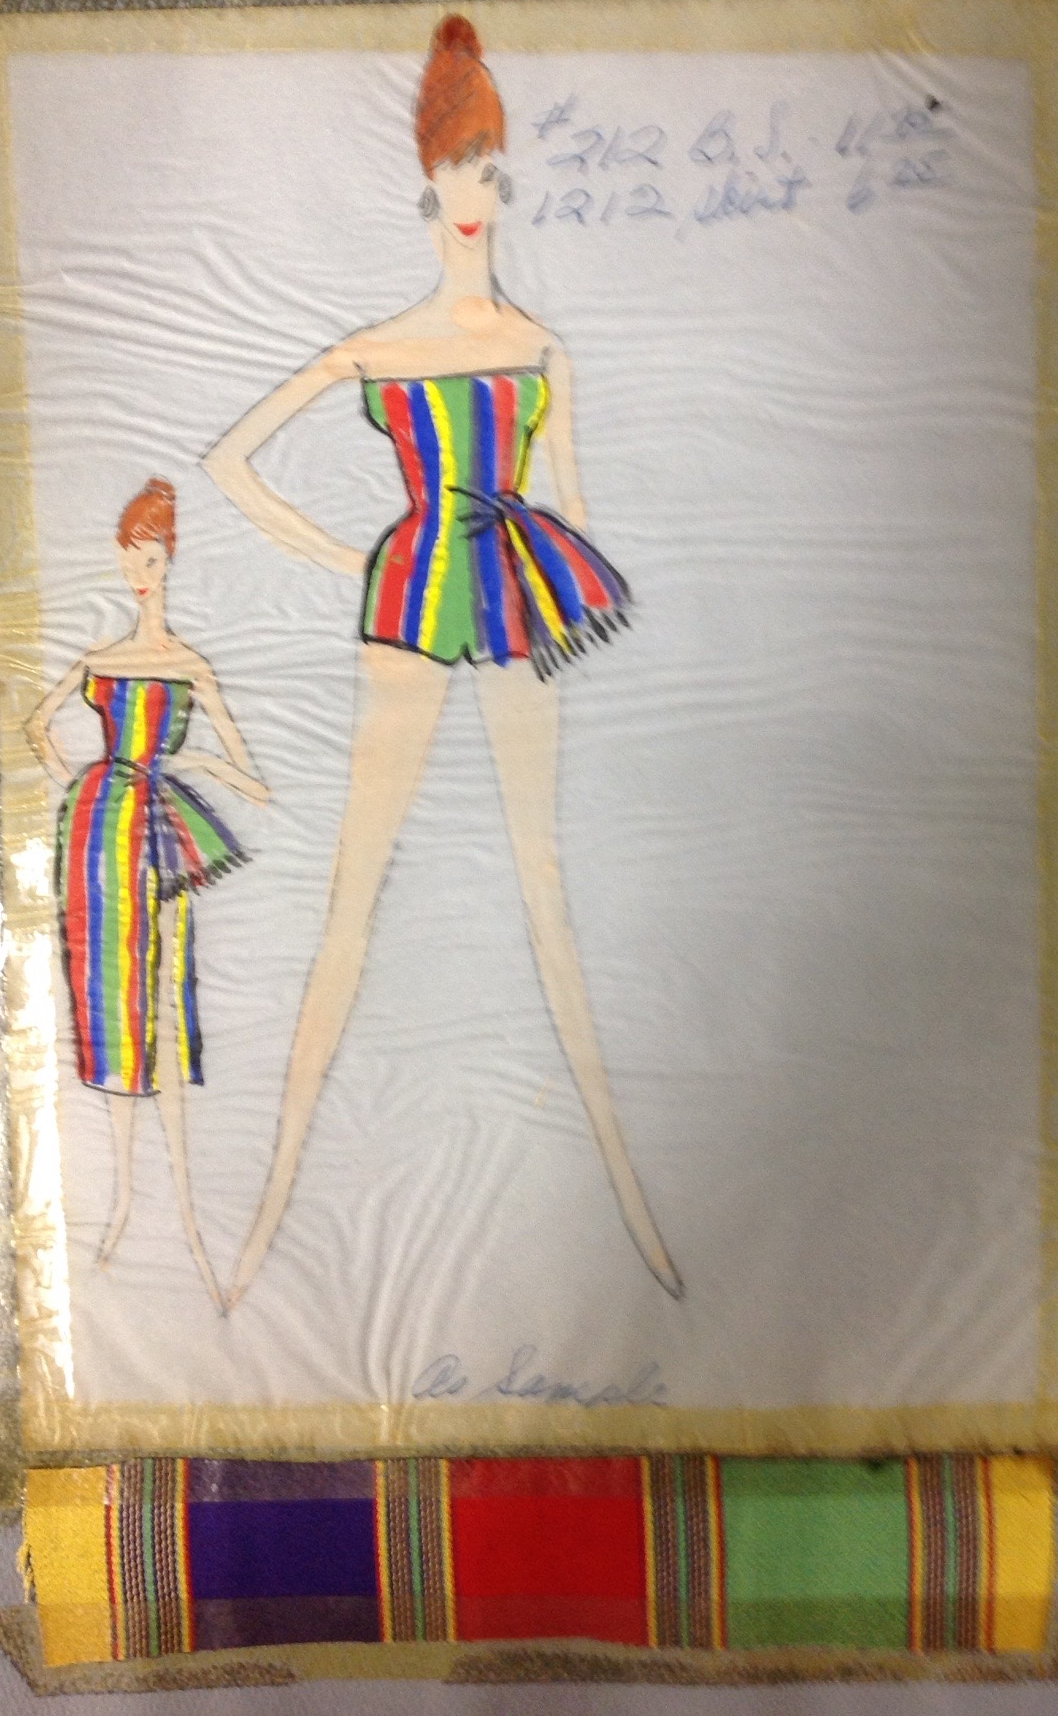 - A colorful, pattered play suit with side sash...and a cover up. As women re-evaluated social norms about just how much body they could show, clothing with